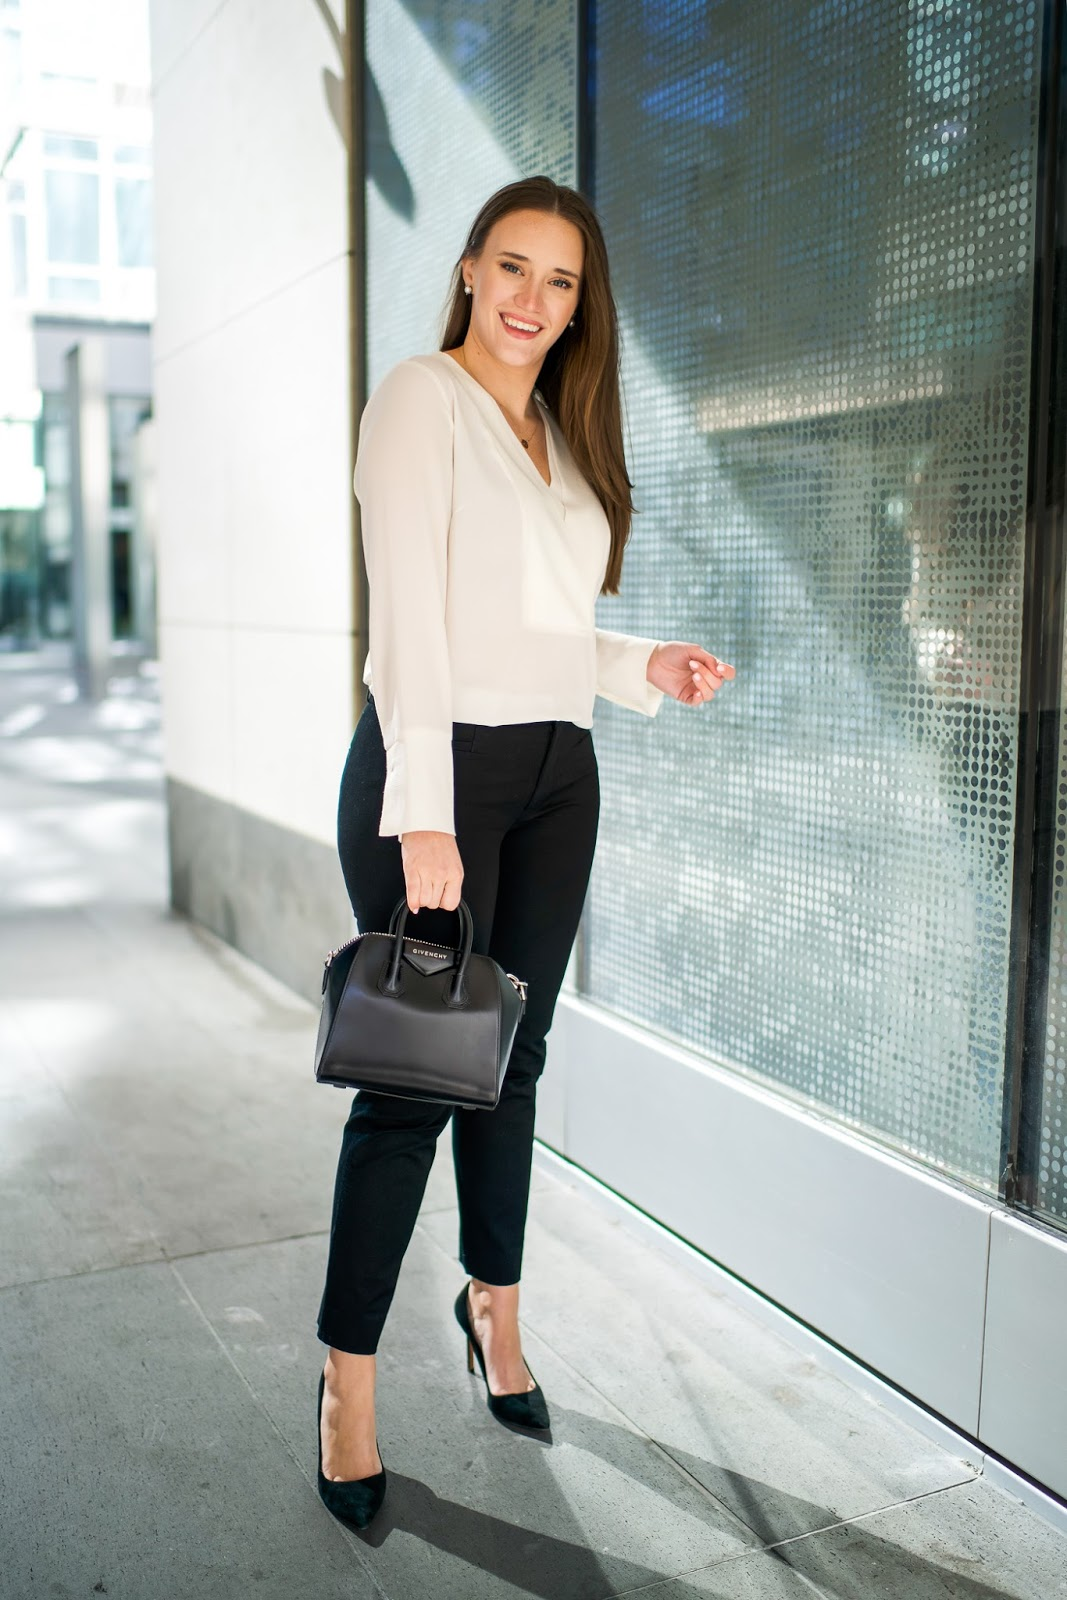 The Best White Blouse for Work by popular New York fashion blogger Covering the Bases